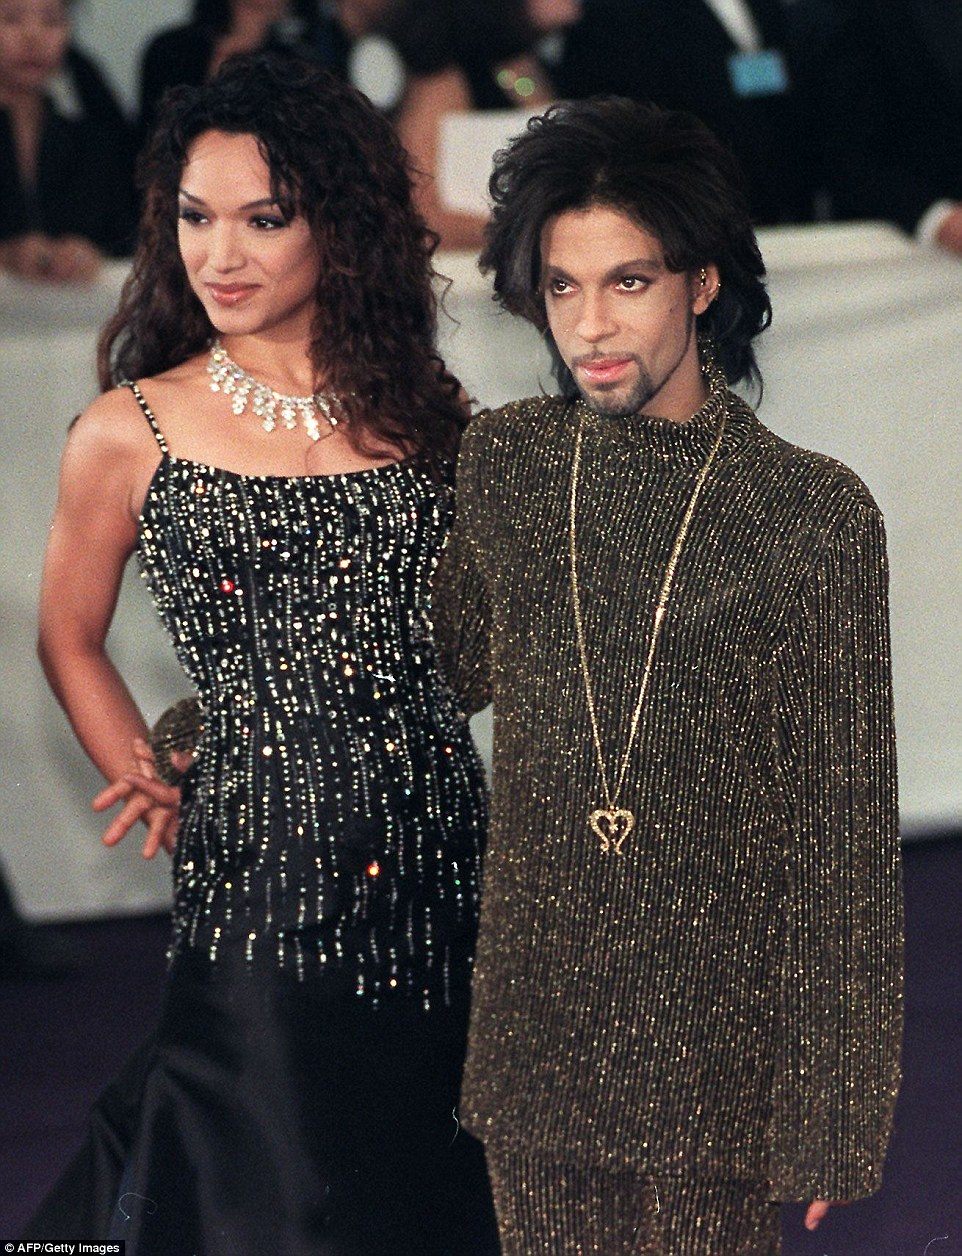 Prince married backup dance Mayte Garcia (pictured together in 1999) on Valentine's Day in 1996. He dedicated the song the Most Beautiful Girl in the World to her two years earlier